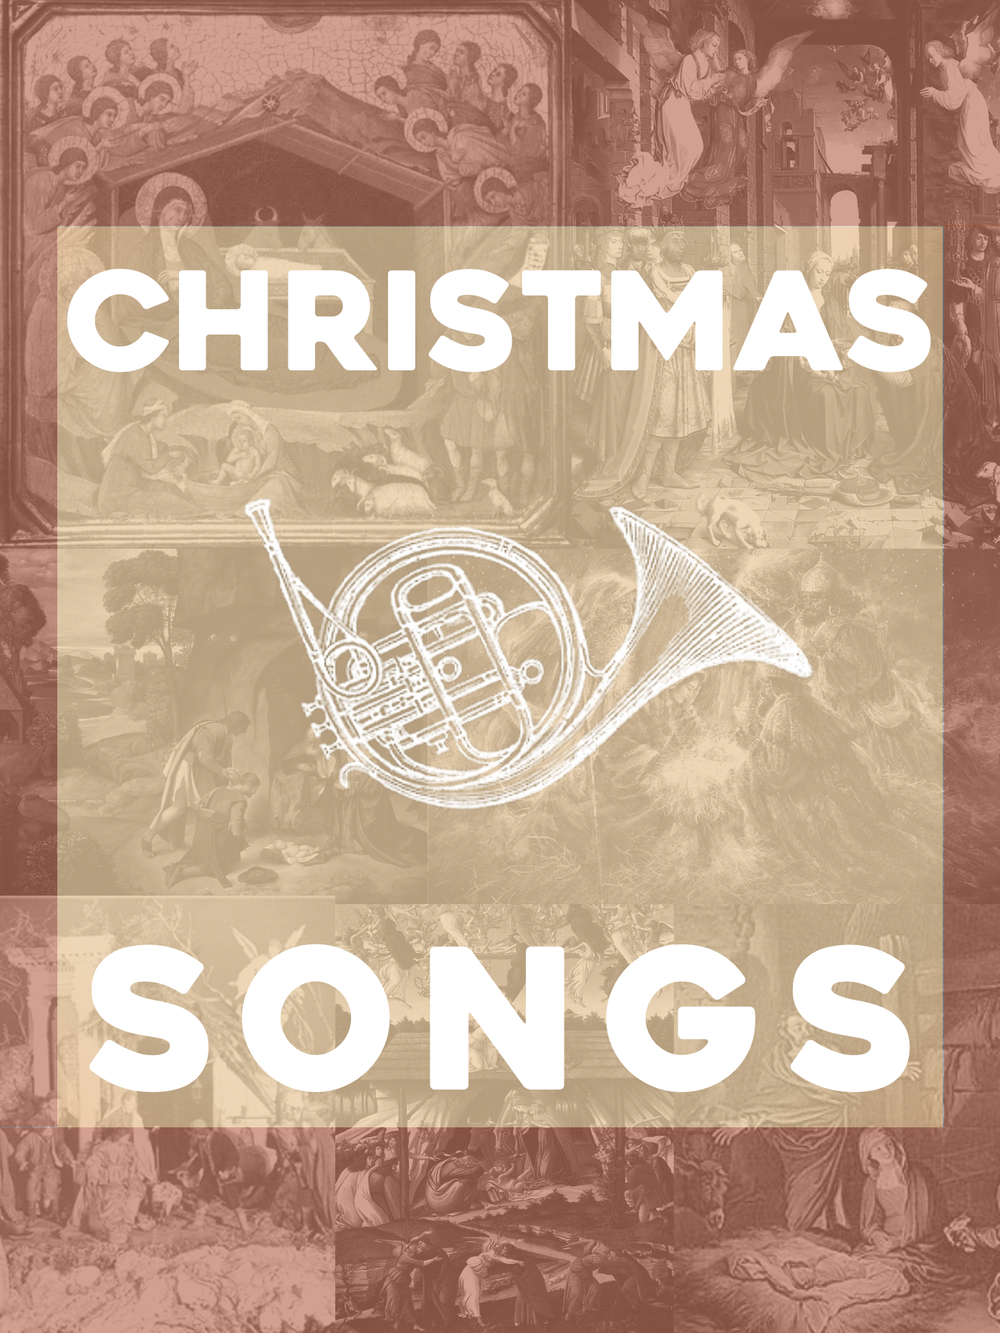 CHRISTMAS SONGS NOV 29 - DEC 20